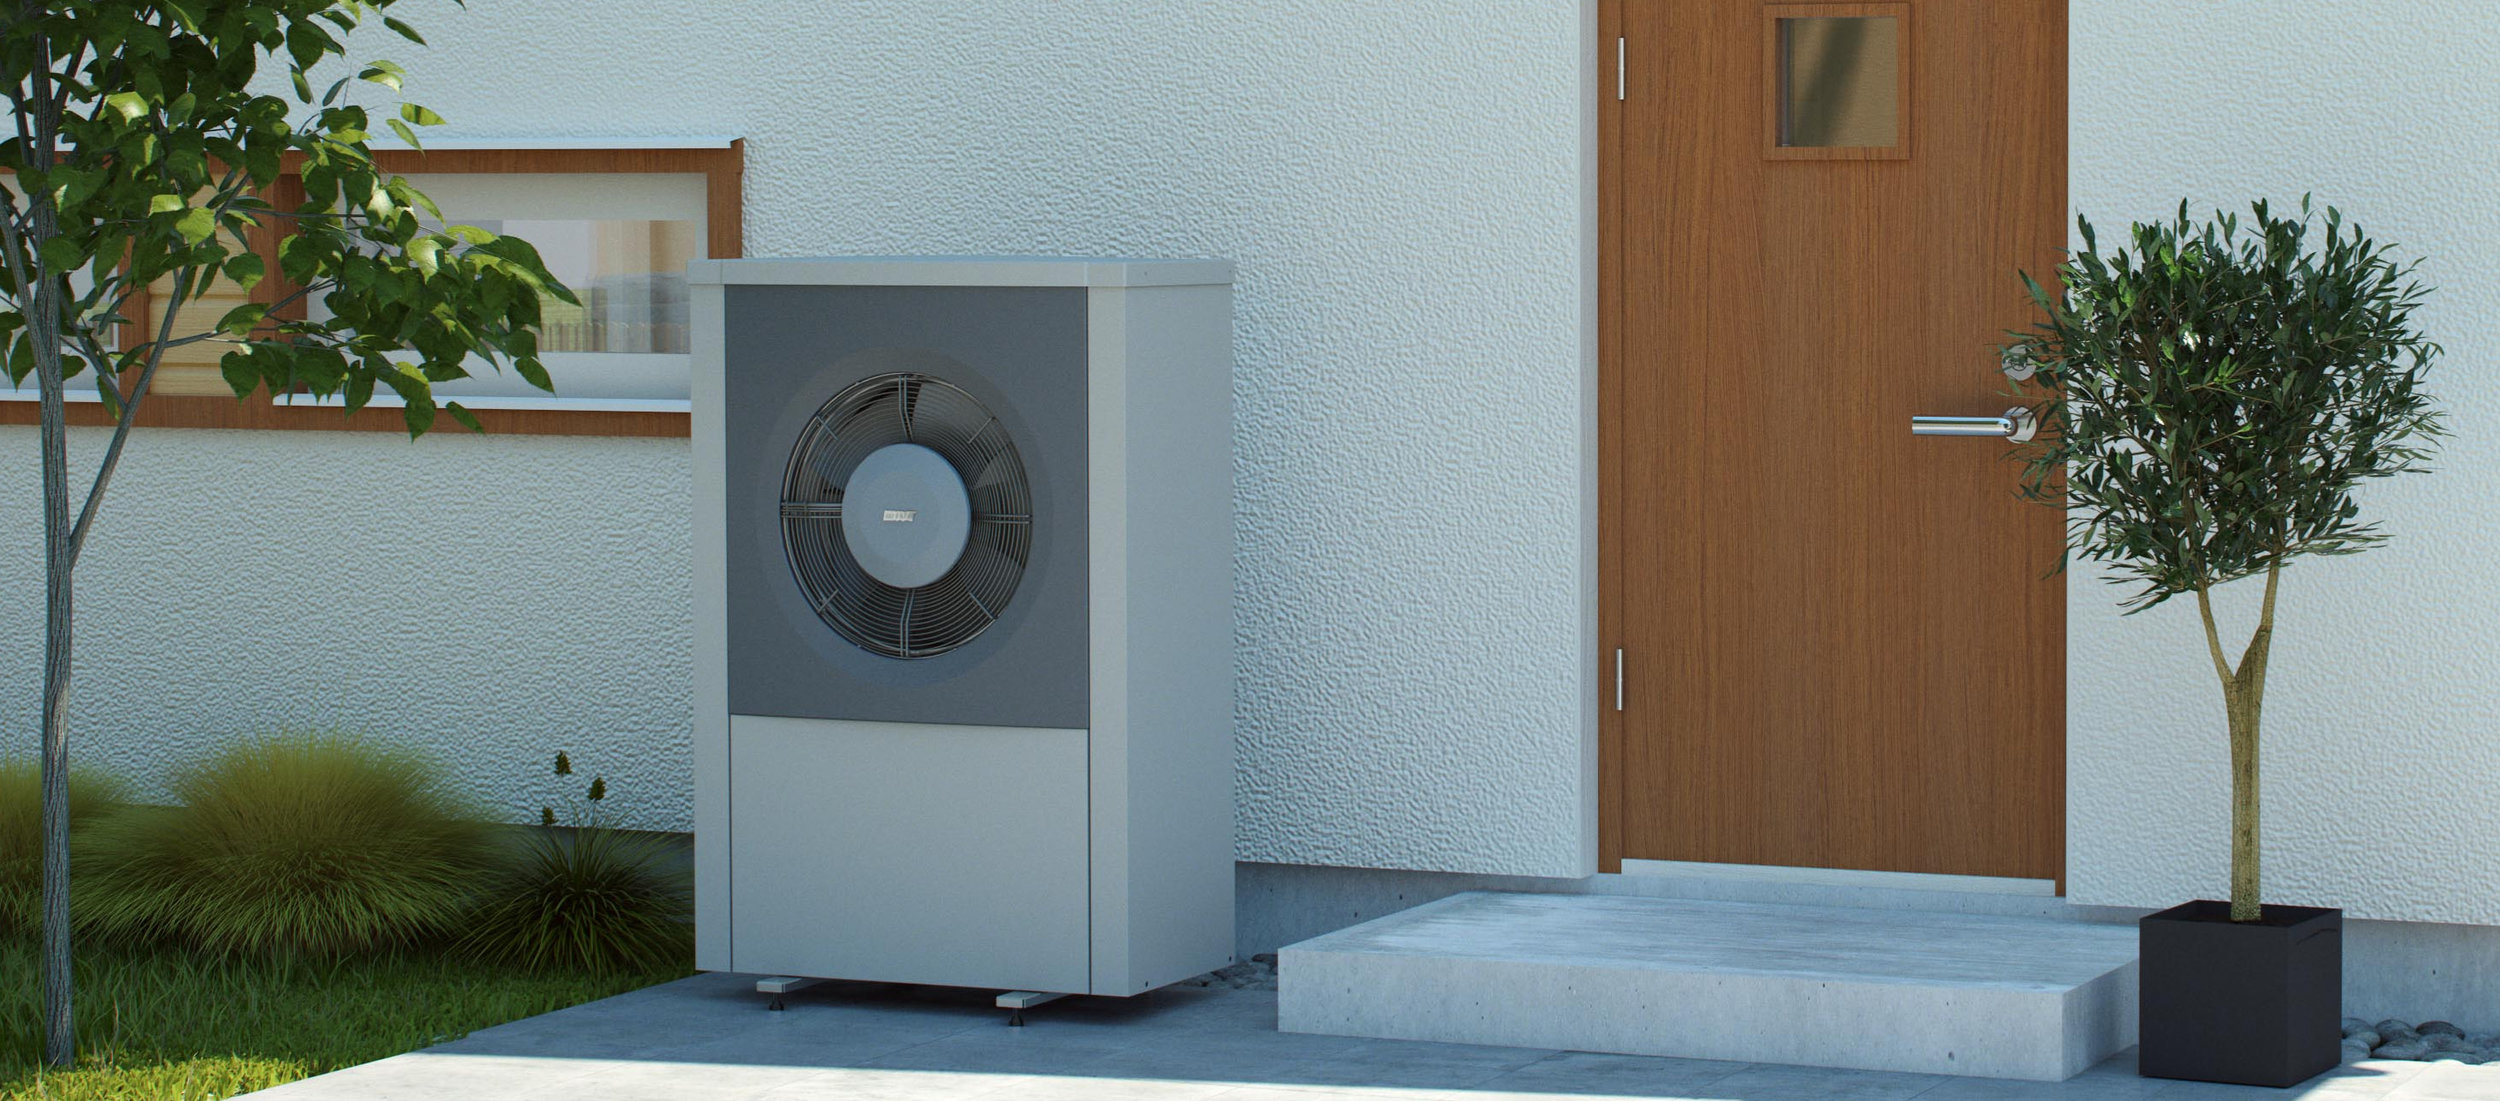 IVT Heat Pump Recycling Scheme - Up to £1,200 off a brand new IVT AirX when you trade in your old IVT Greenline.